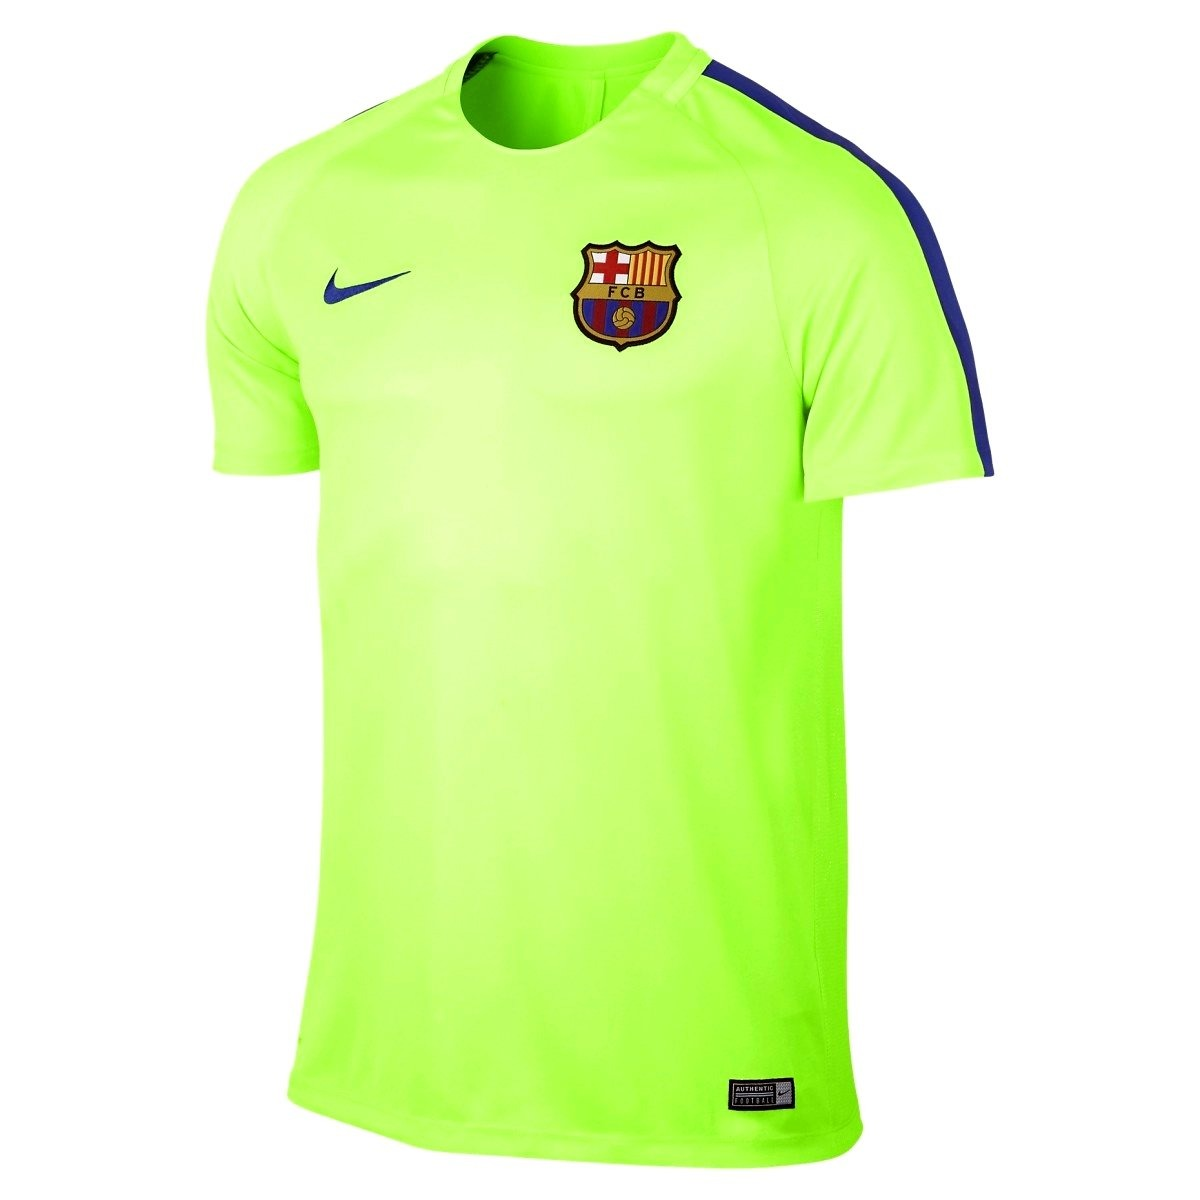 8887dd901c24a Camisa Nike Fc Barcelona Dry Top Squad 808924